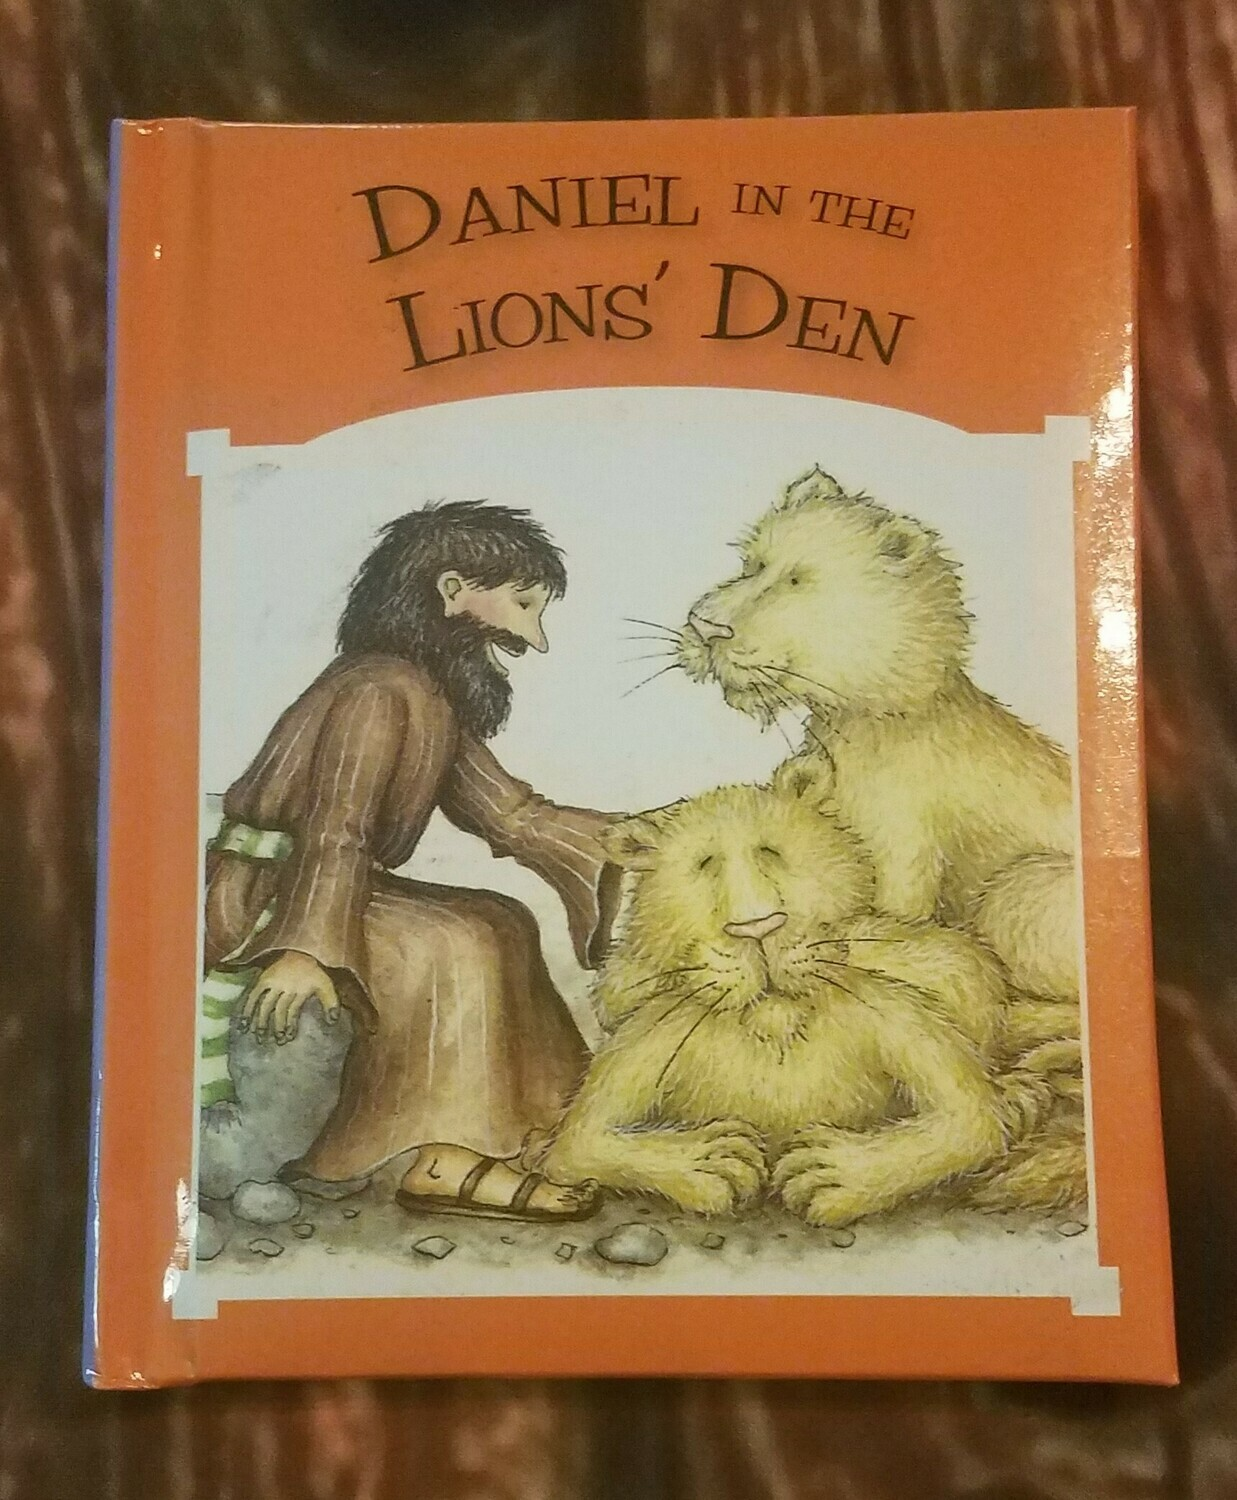 Daniel in the Lions' Den by Tim and Jenny Wood